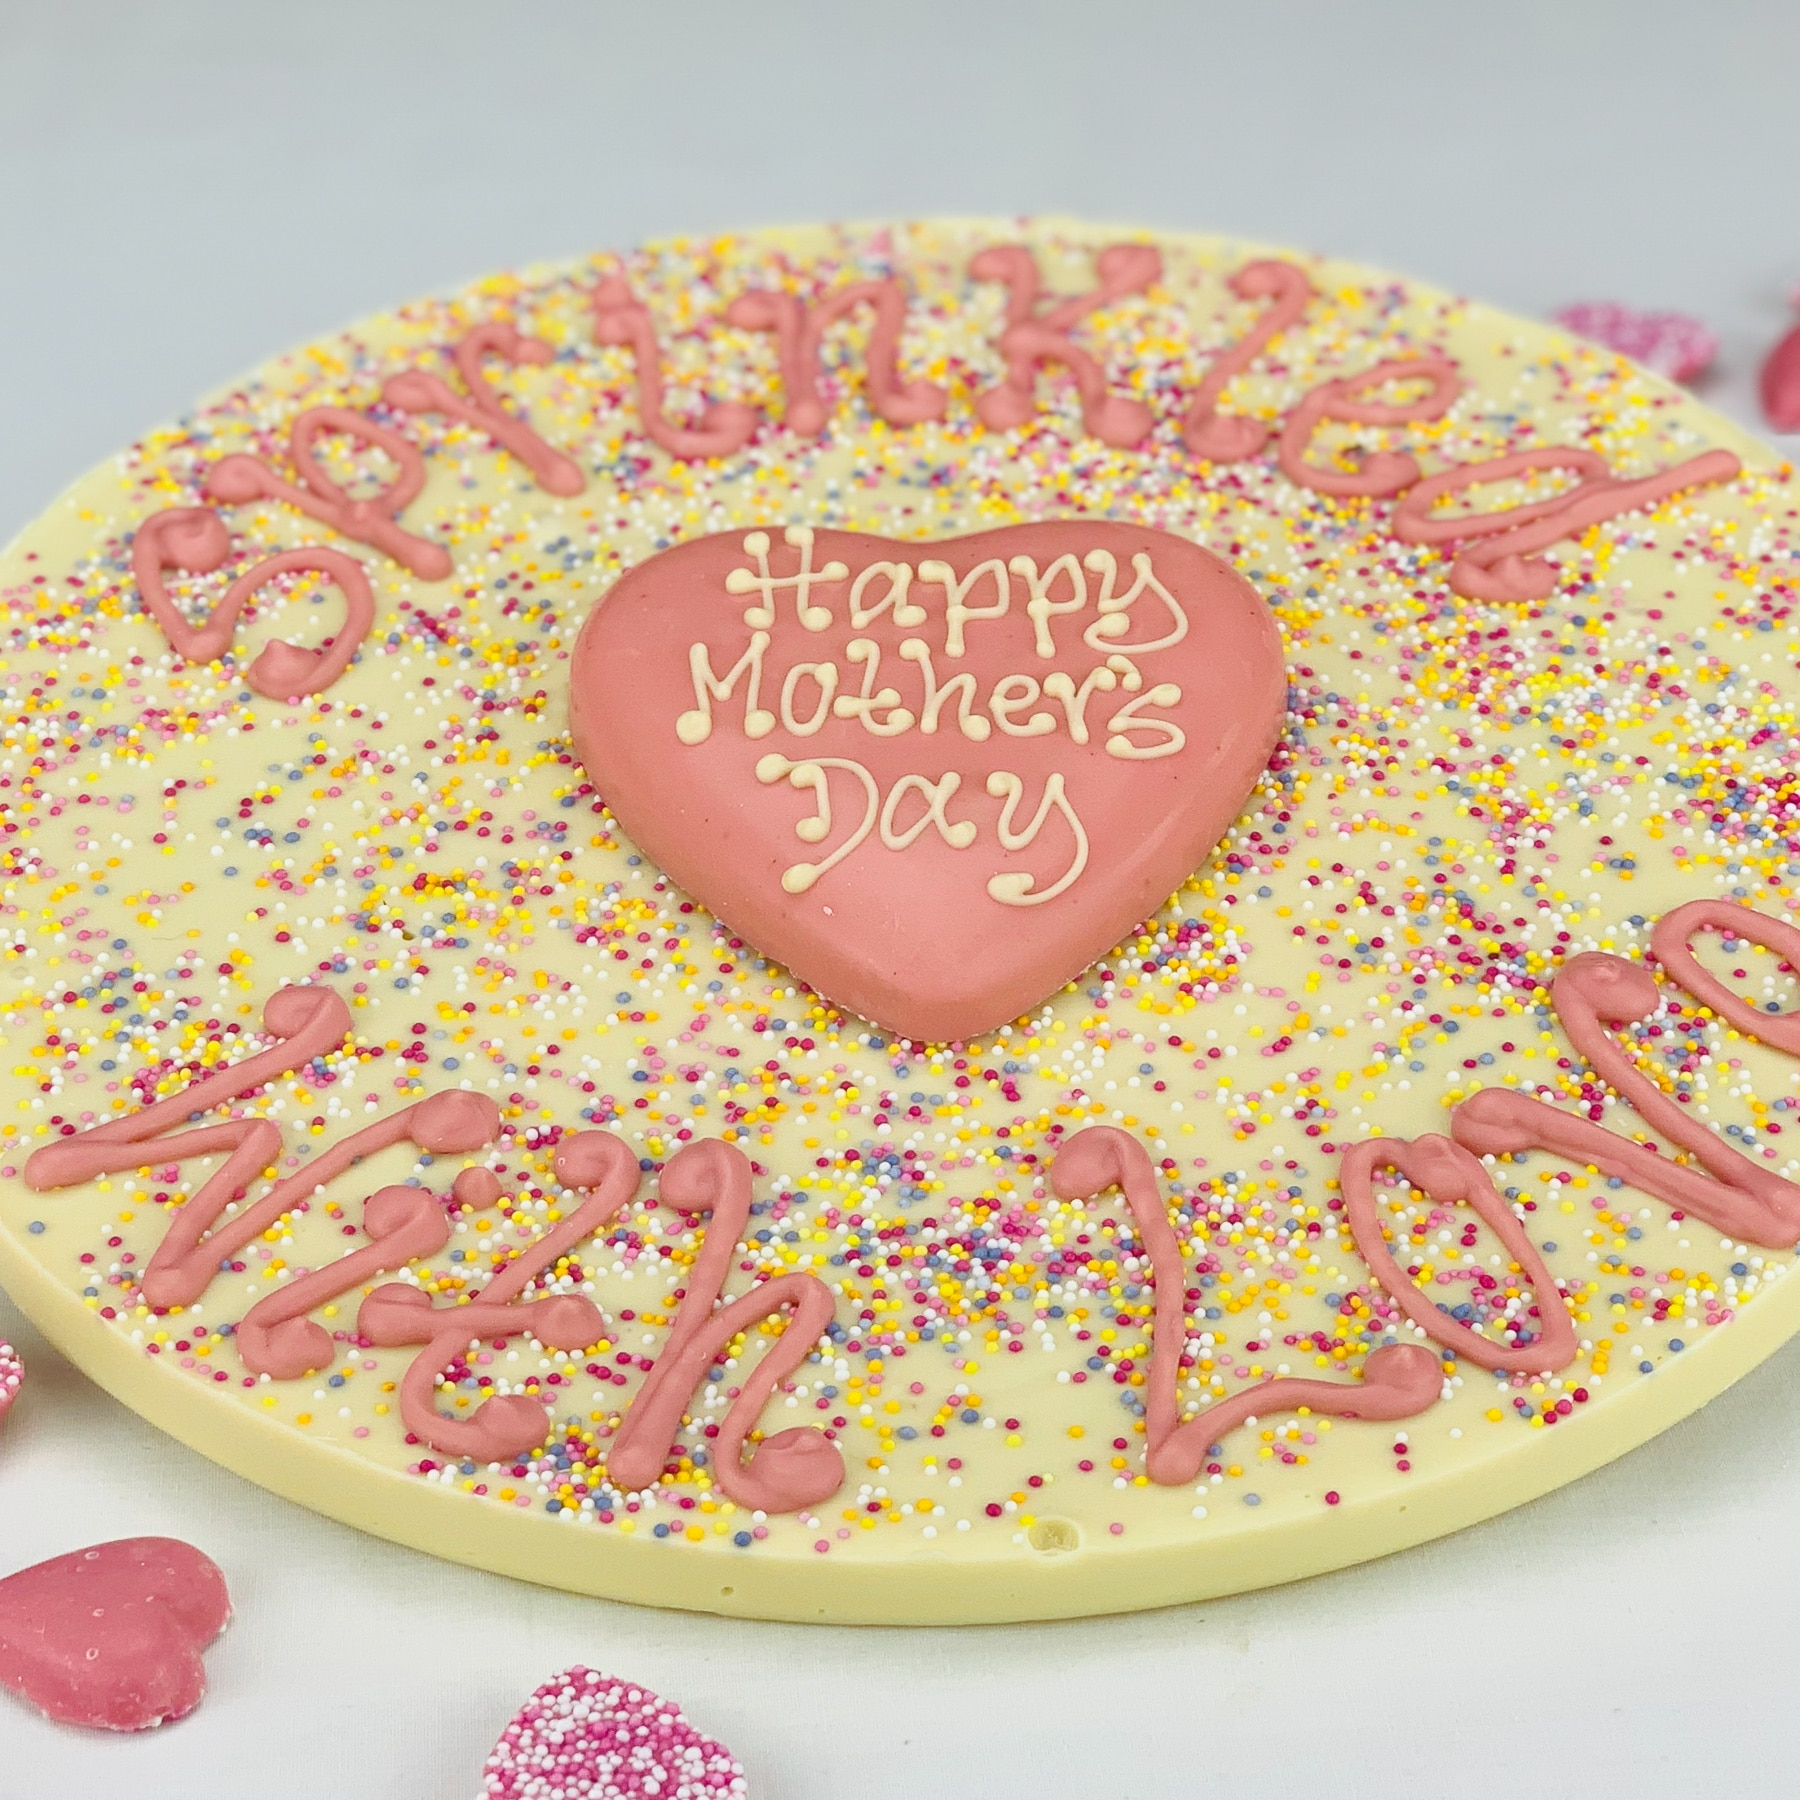 Valentines chocolate jazzie sprinkled with love